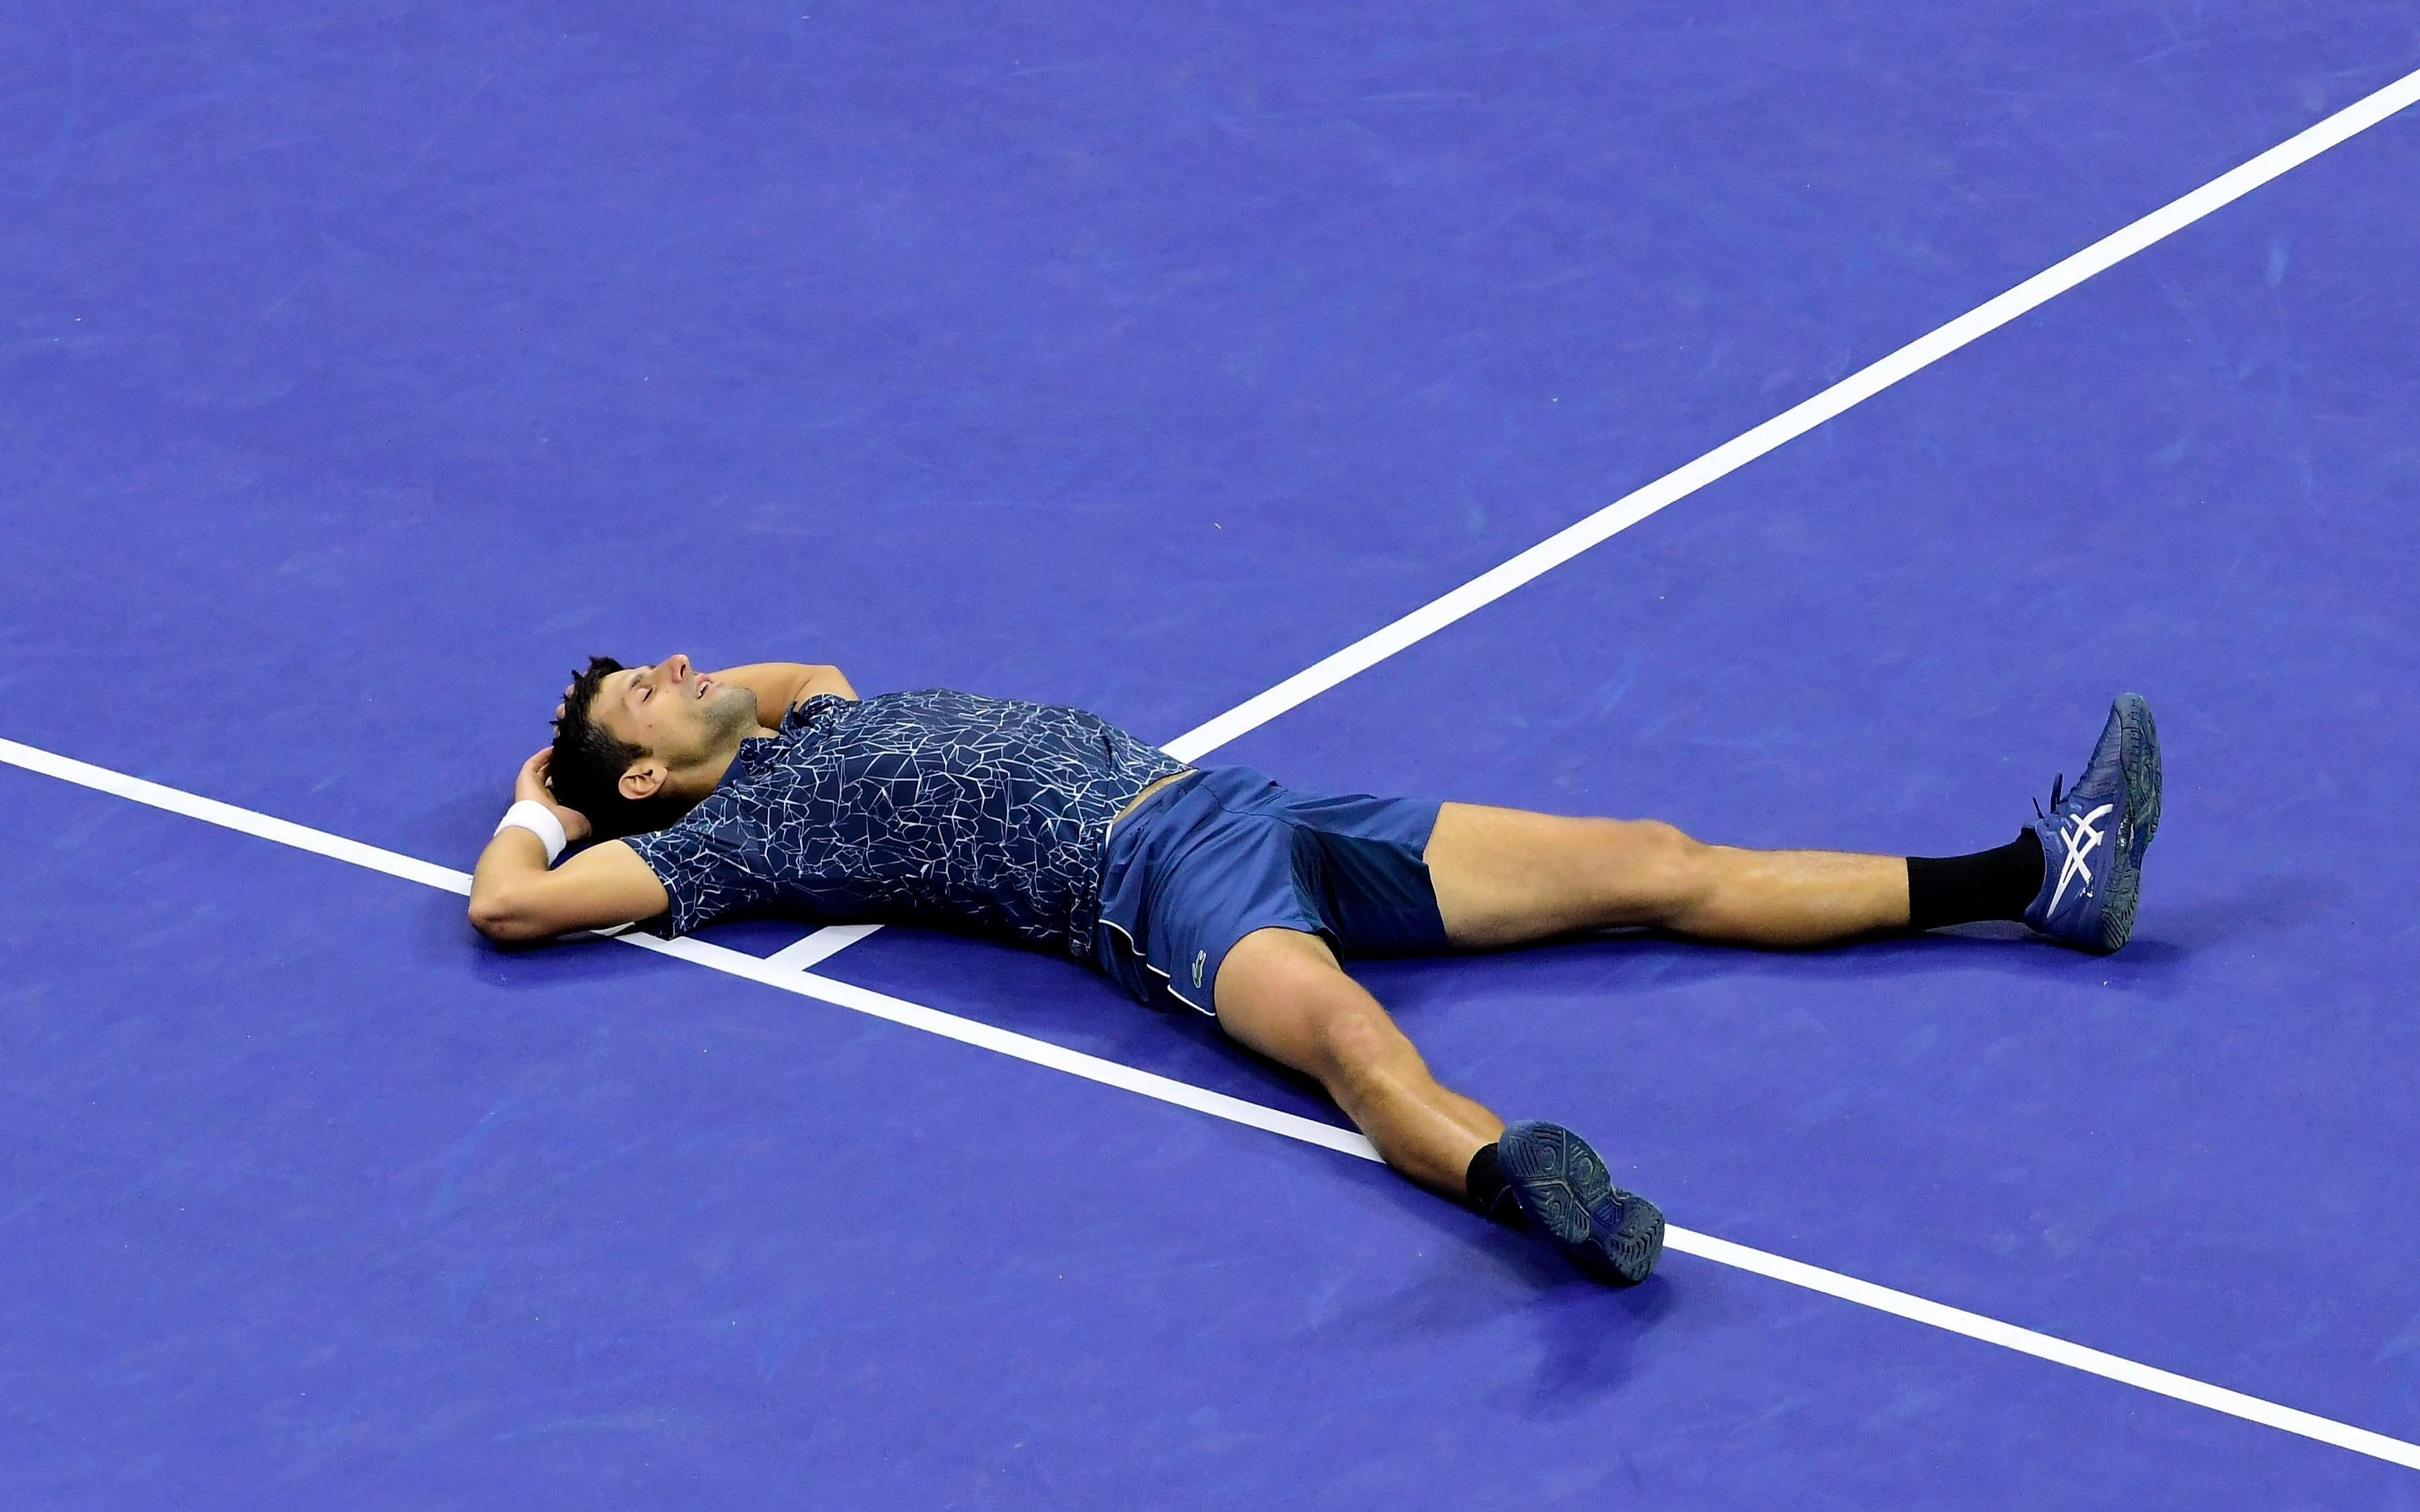 Novak Djokovic lays on the ground in triumph after winning the US Open